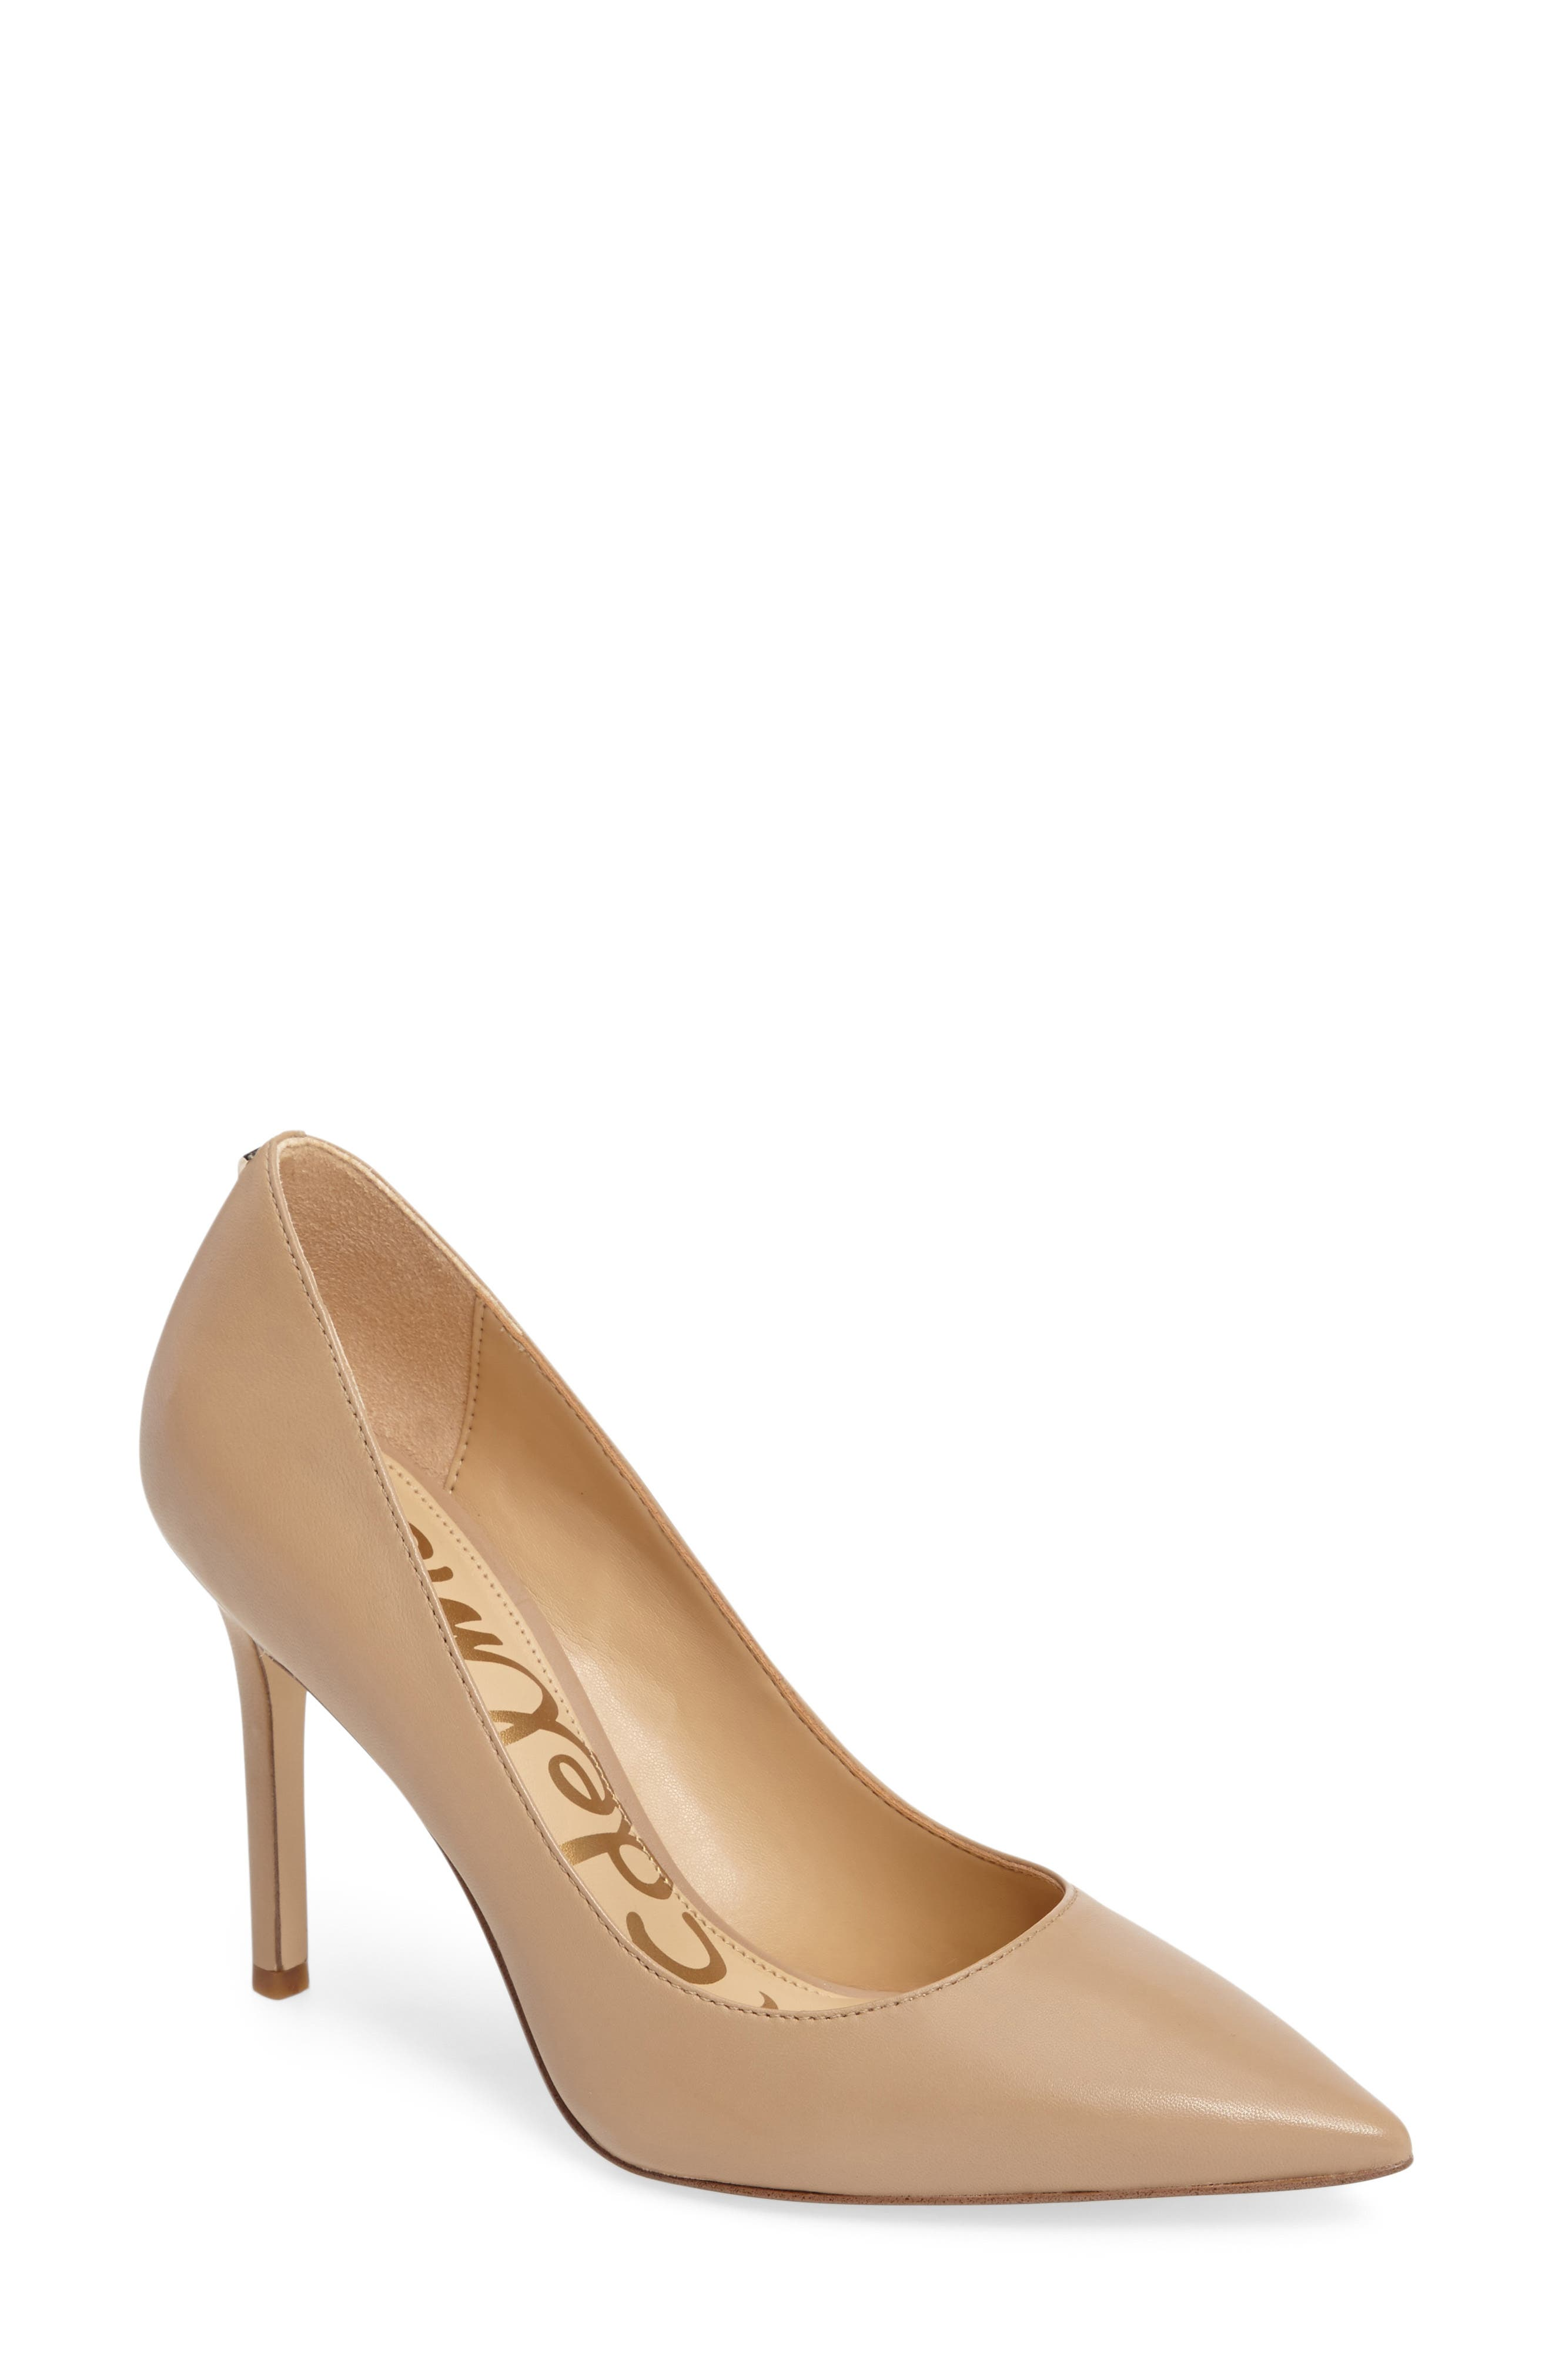 Main Image - Sam Edelman Hazel Pointy Toe Pump (Women)